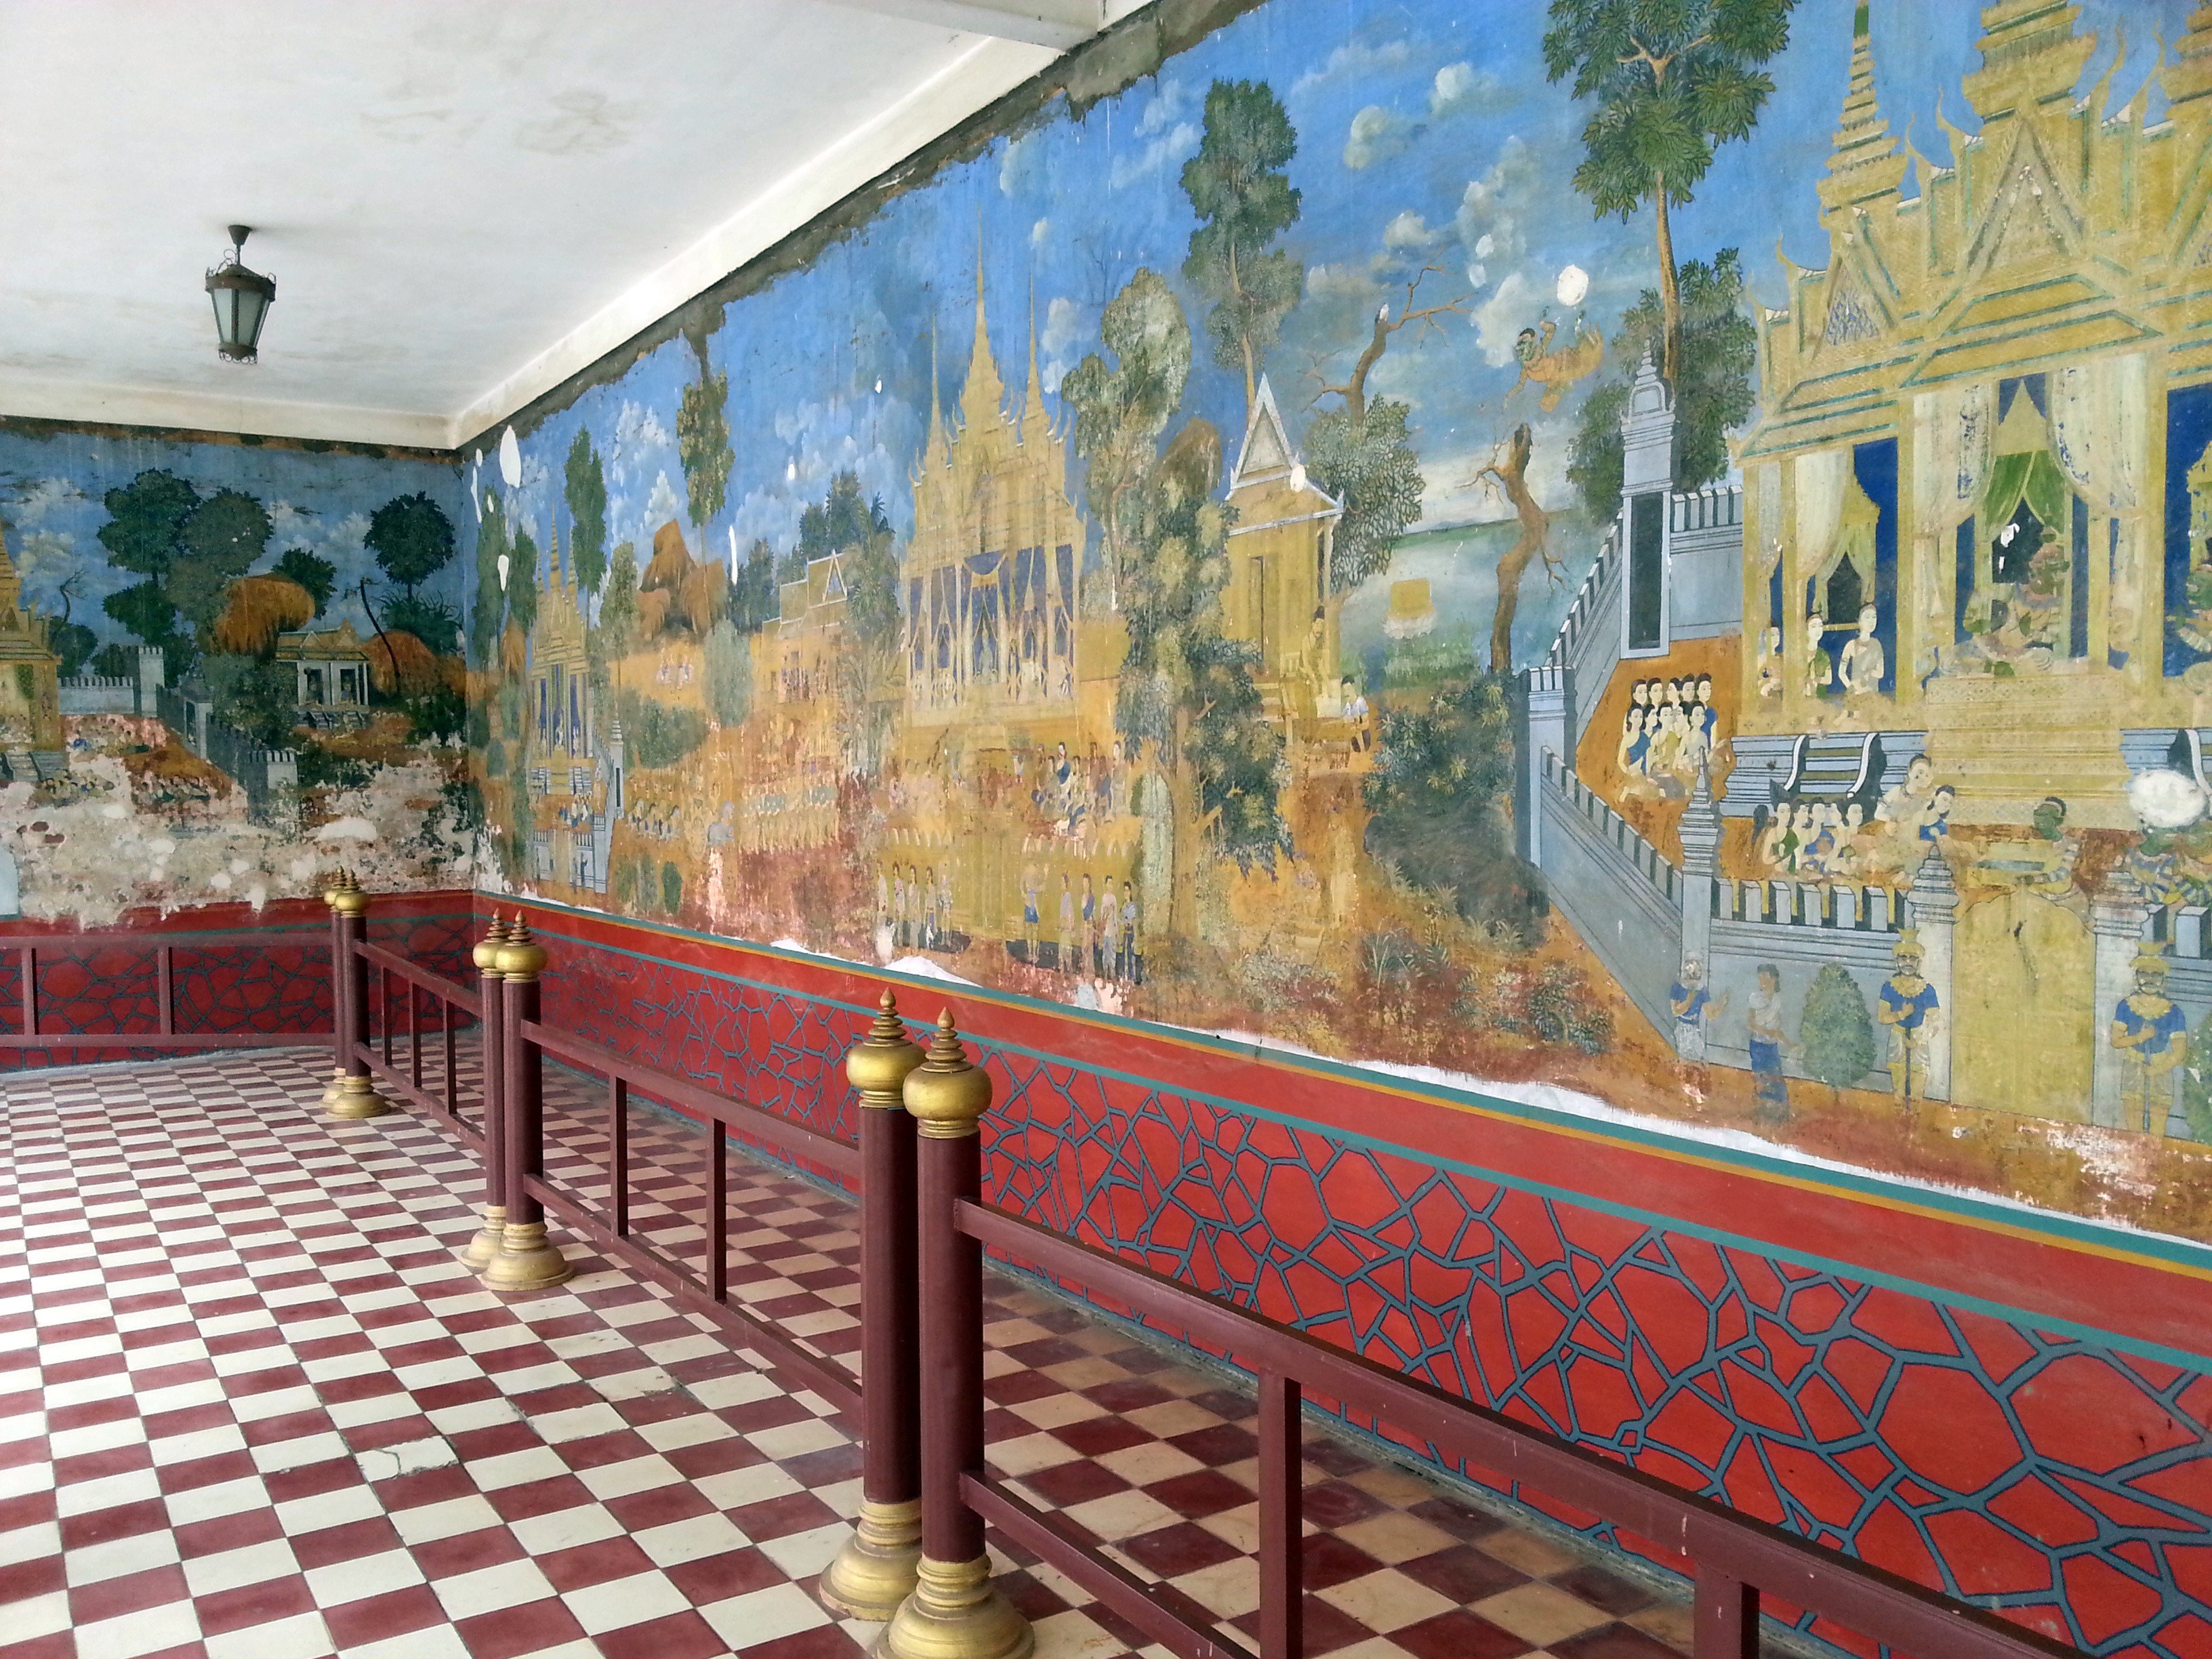 Mural at the Royal Palace in Phnom Penh